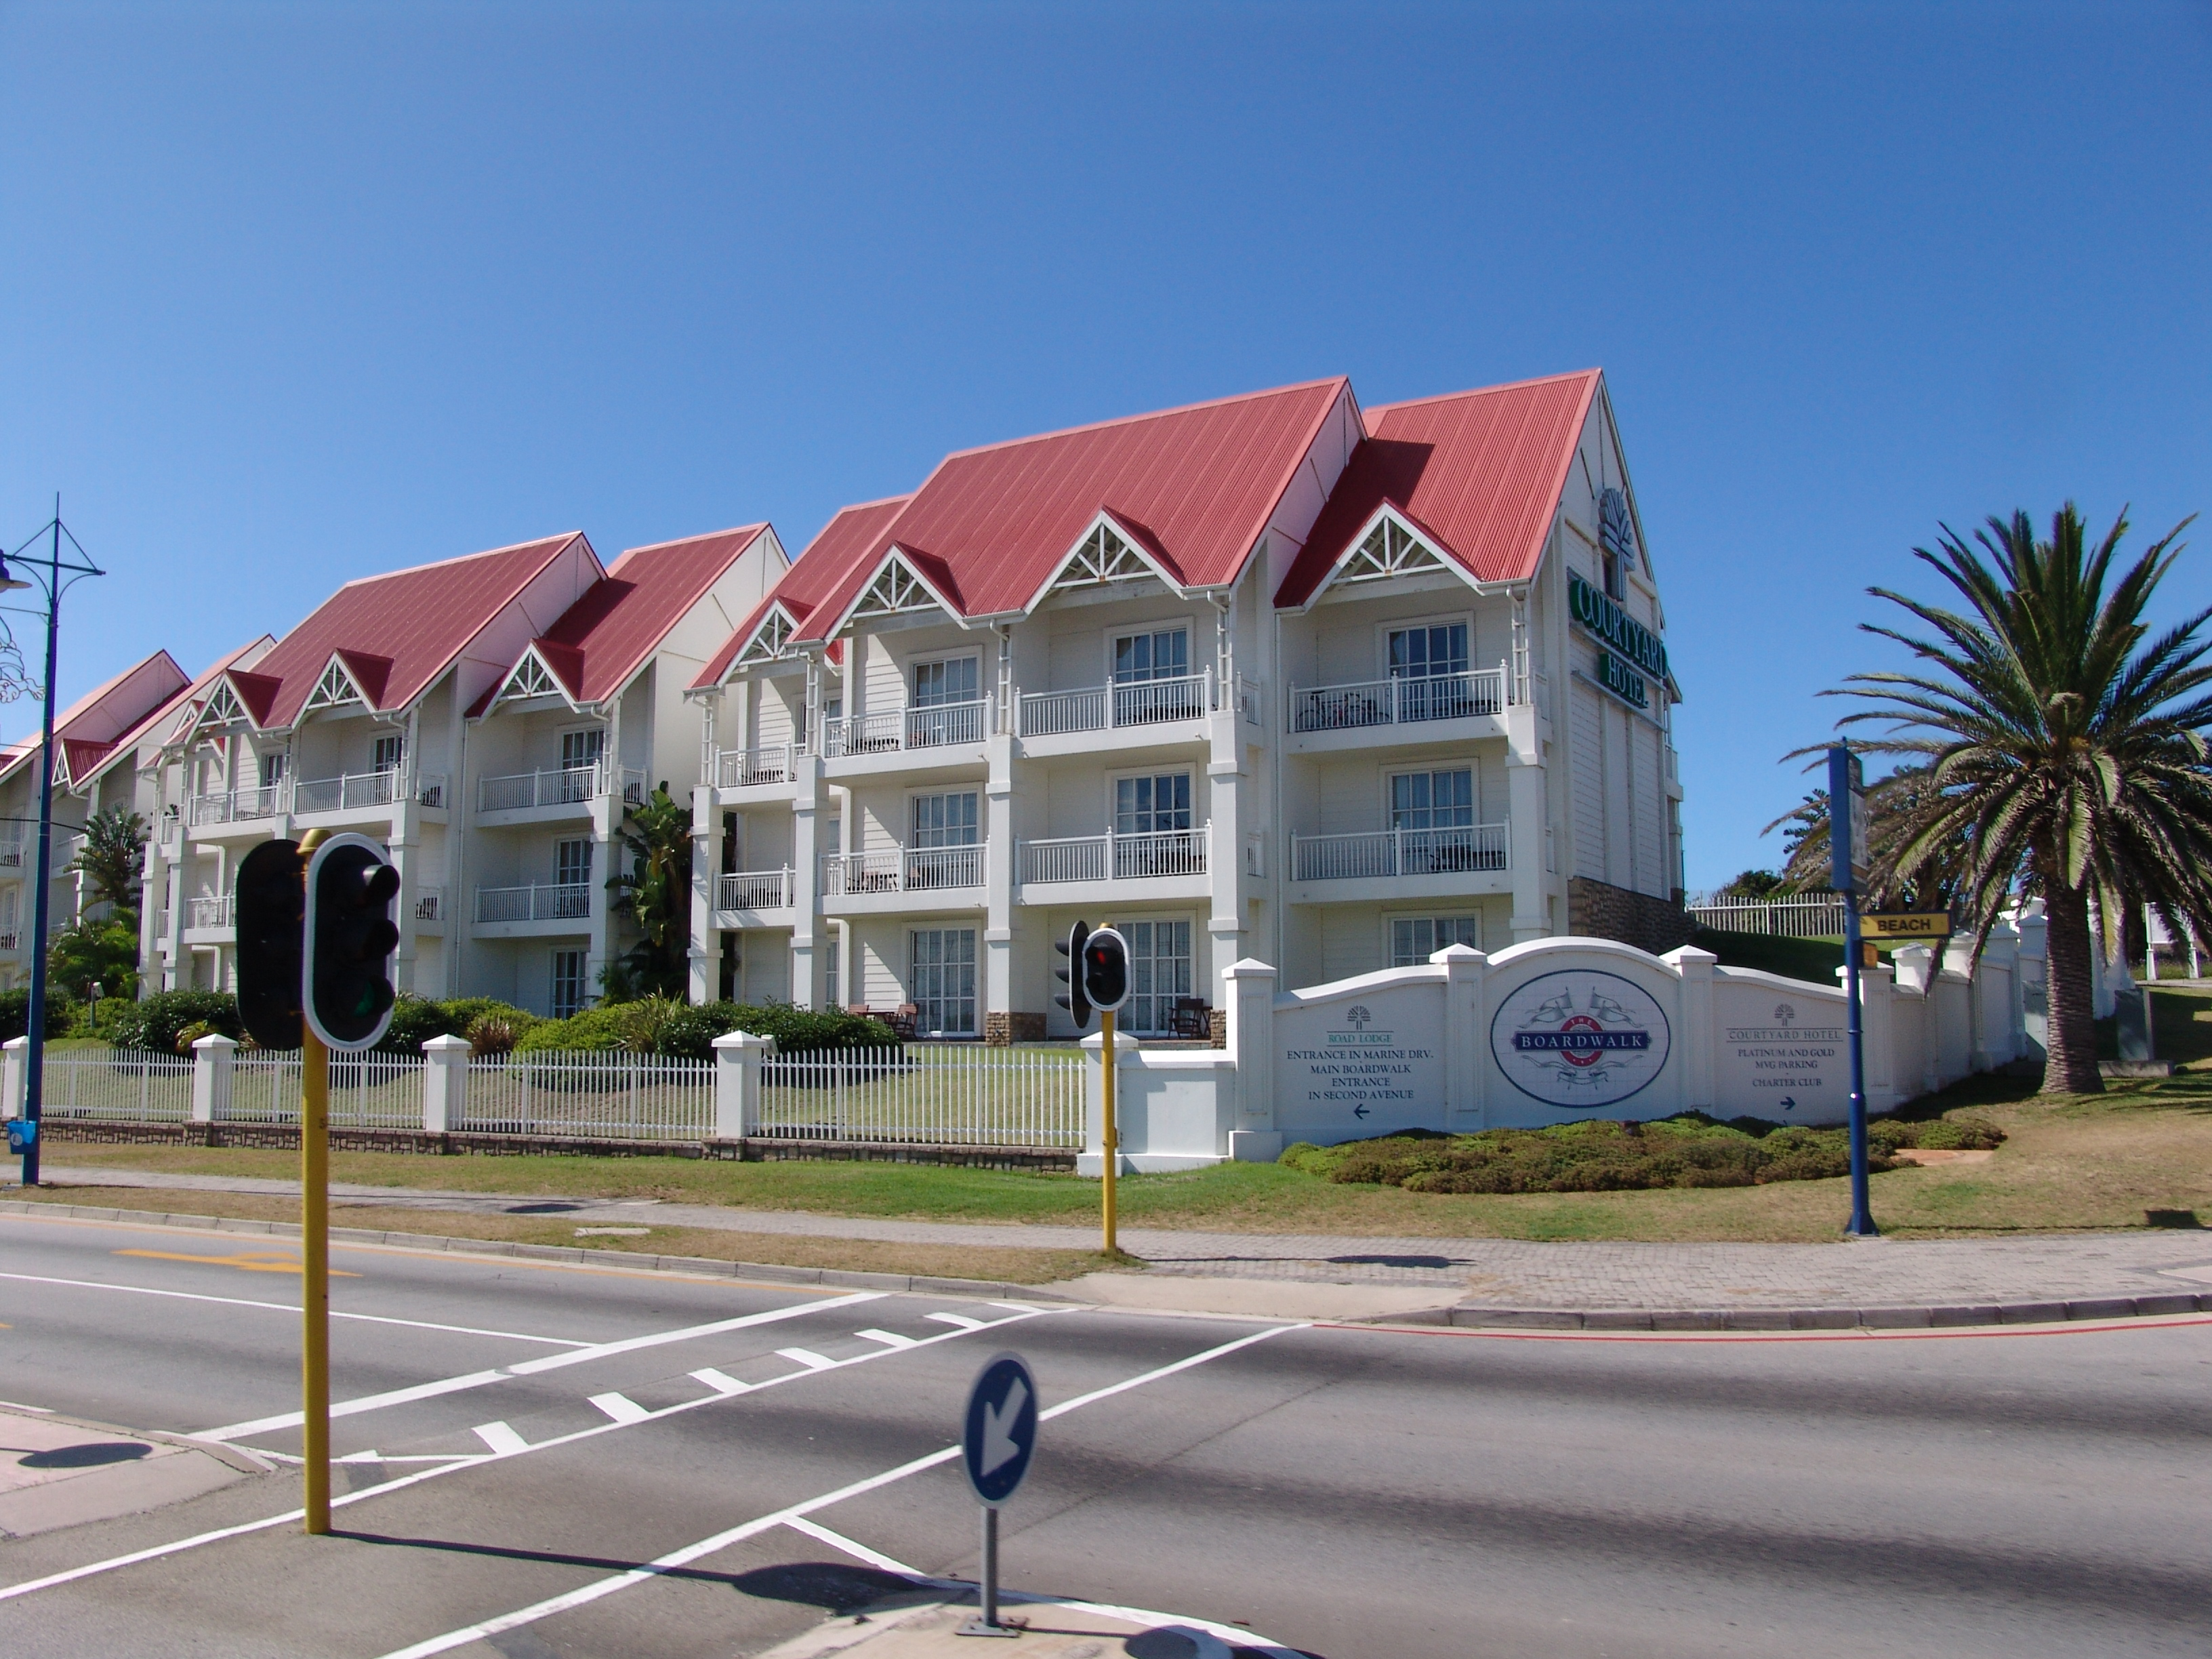 Courtyard hotel port elizabeth reservations - What to do in port elizabeth south africa ...